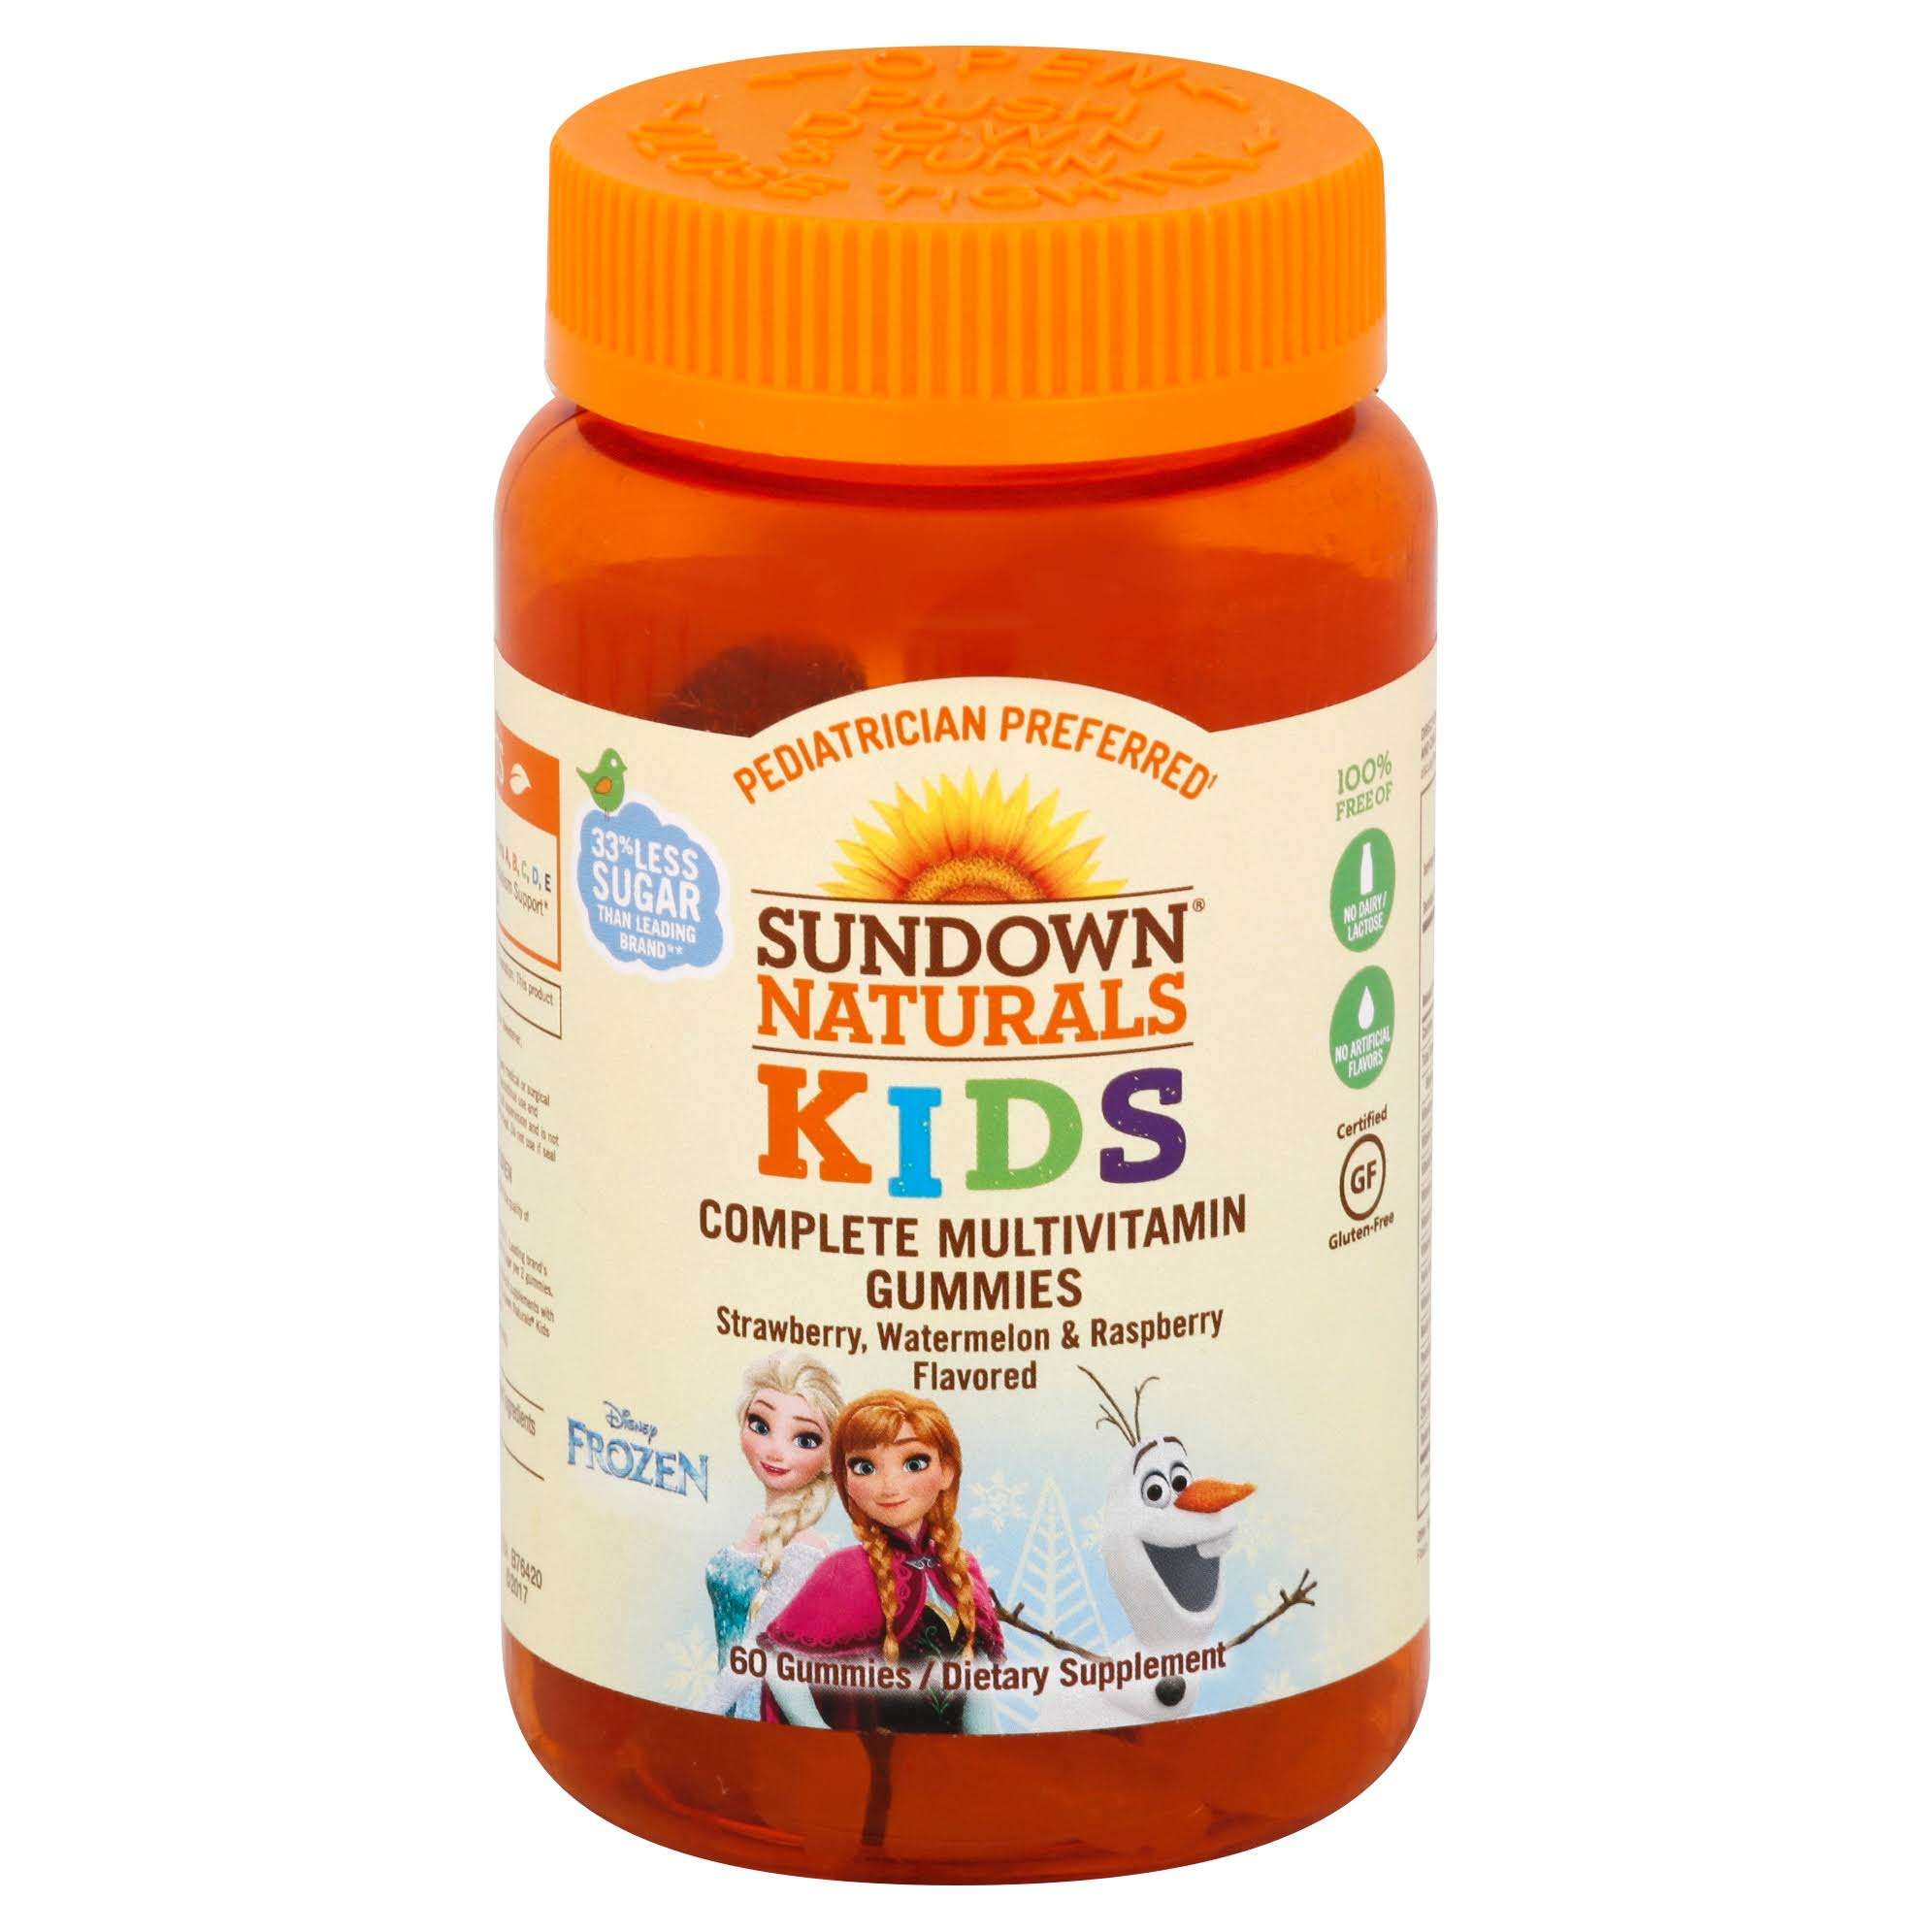 Sundown Naturals Disney Frozen Kids Complete Multivitamin - 60ct